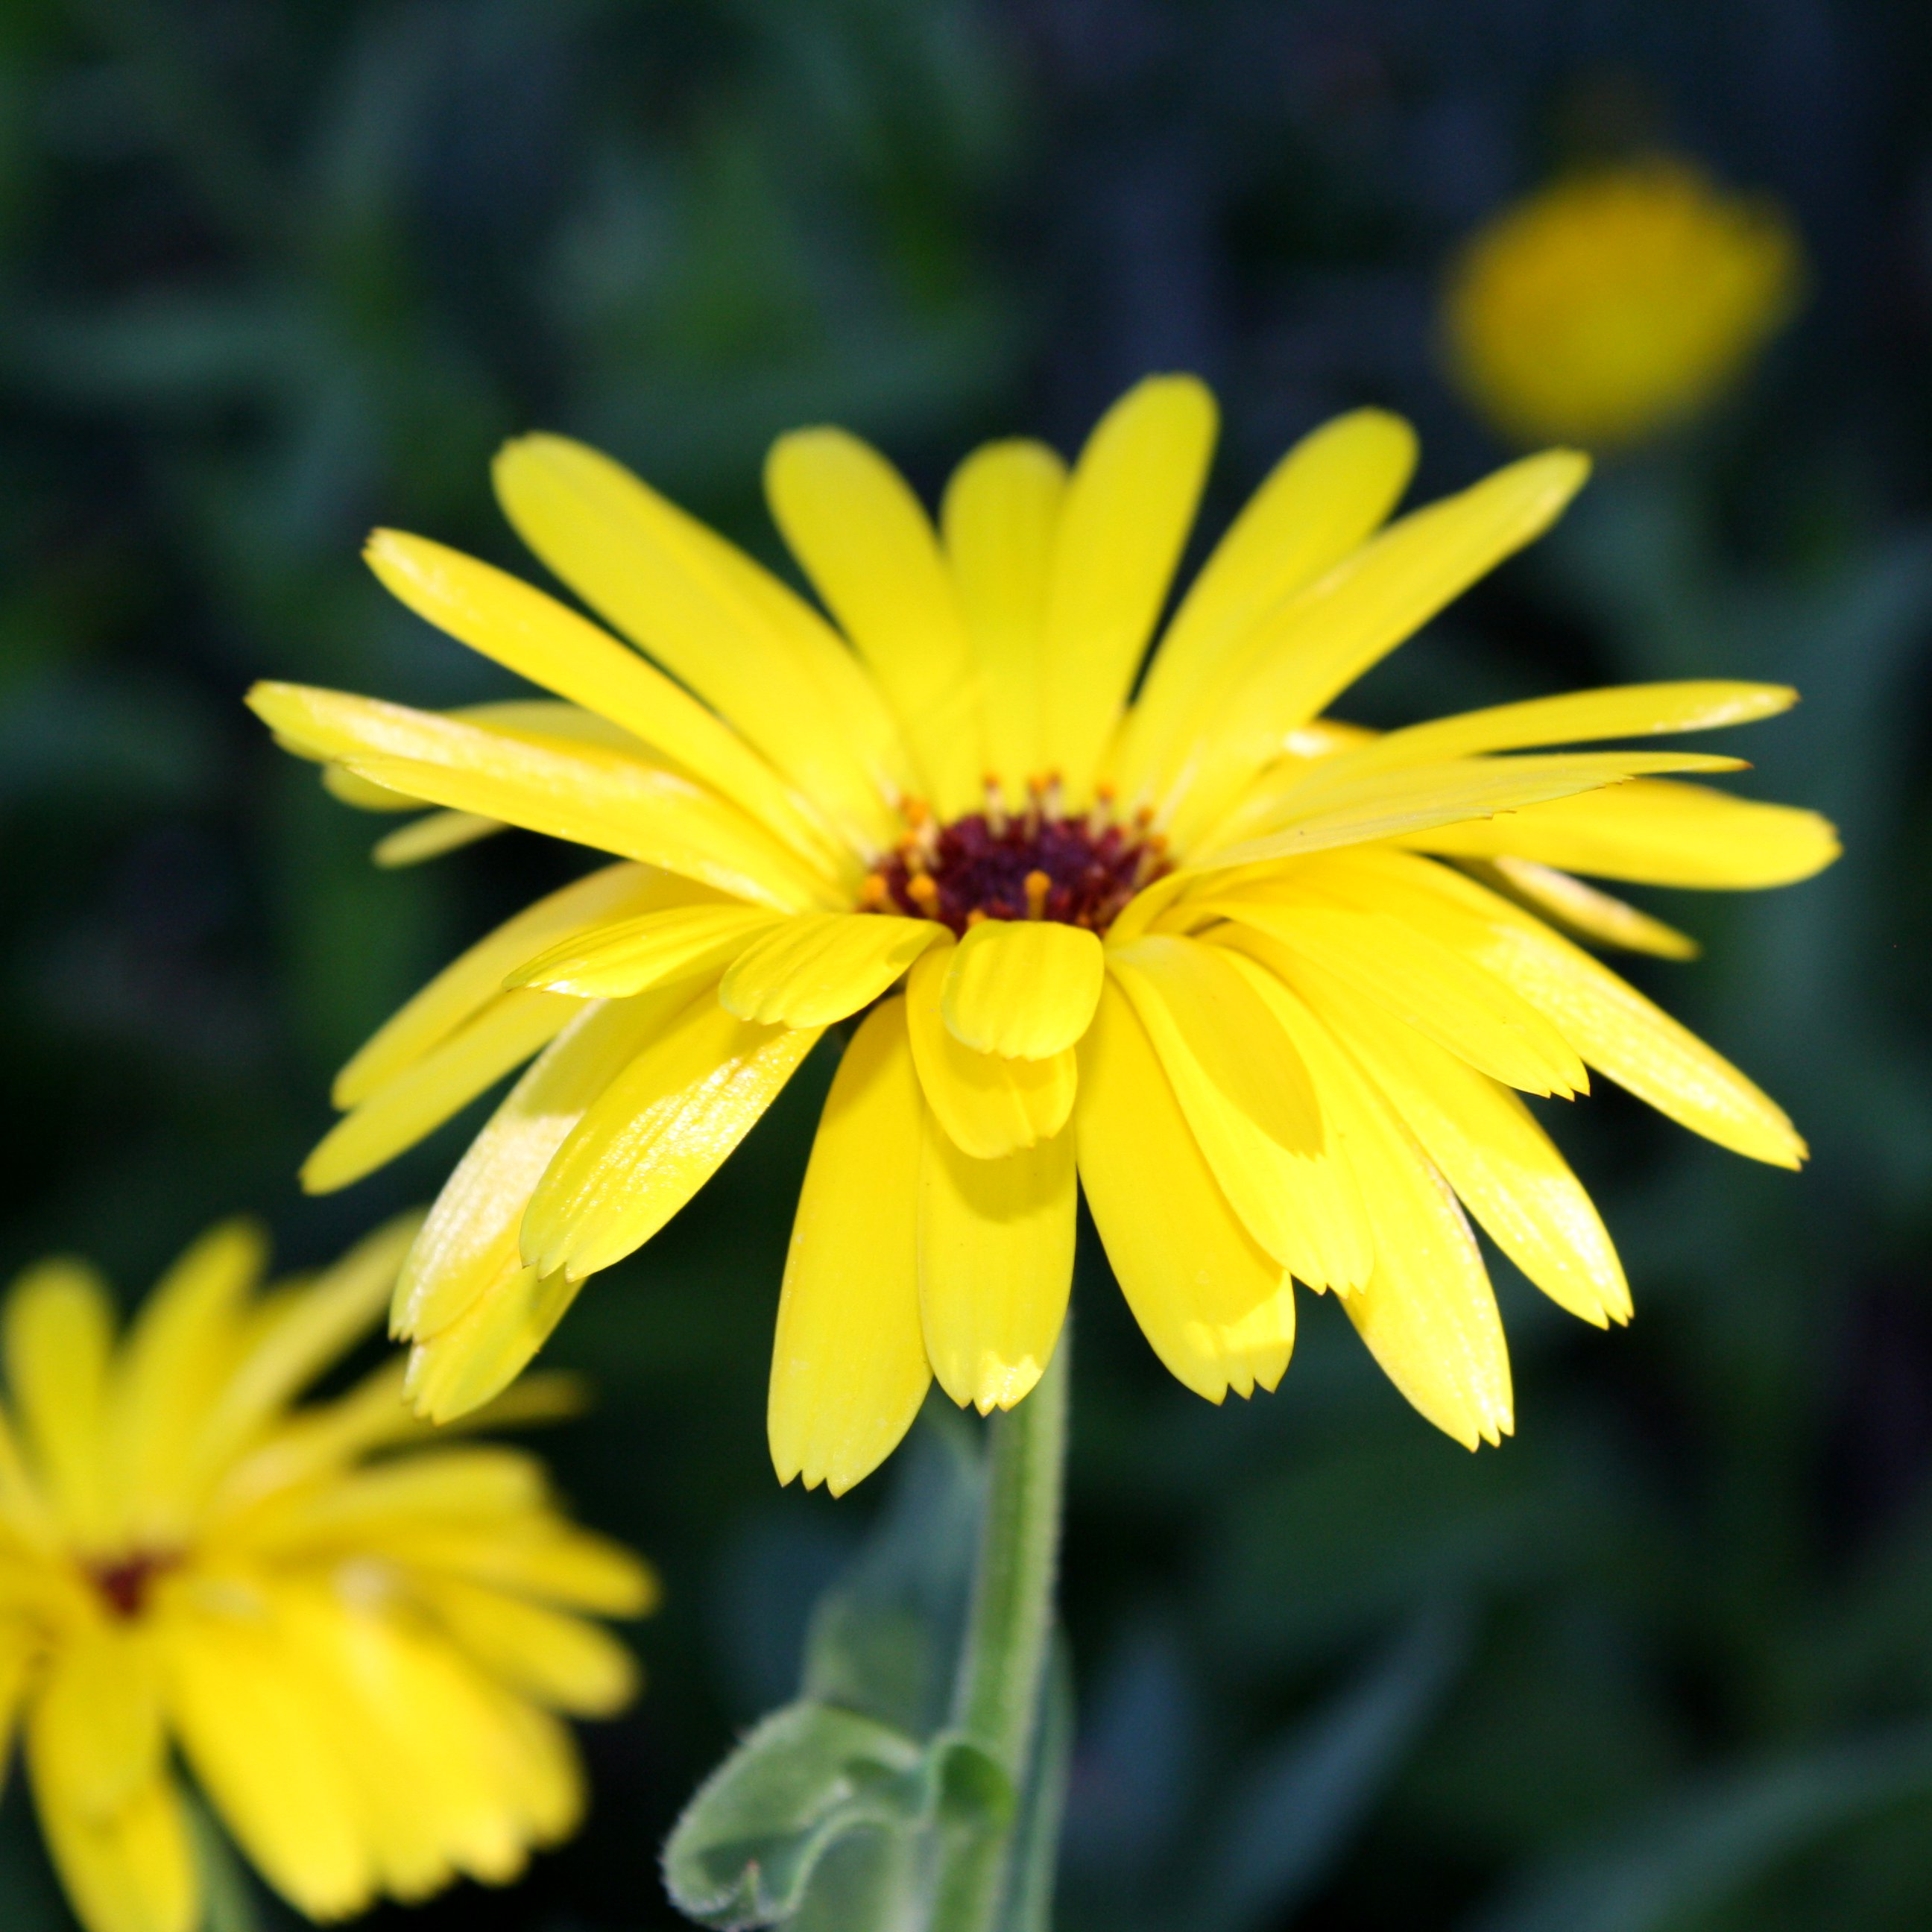 Yellow flower with 3 prong petals picture free photograph photos yellow flower with 3 prong petals mightylinksfo